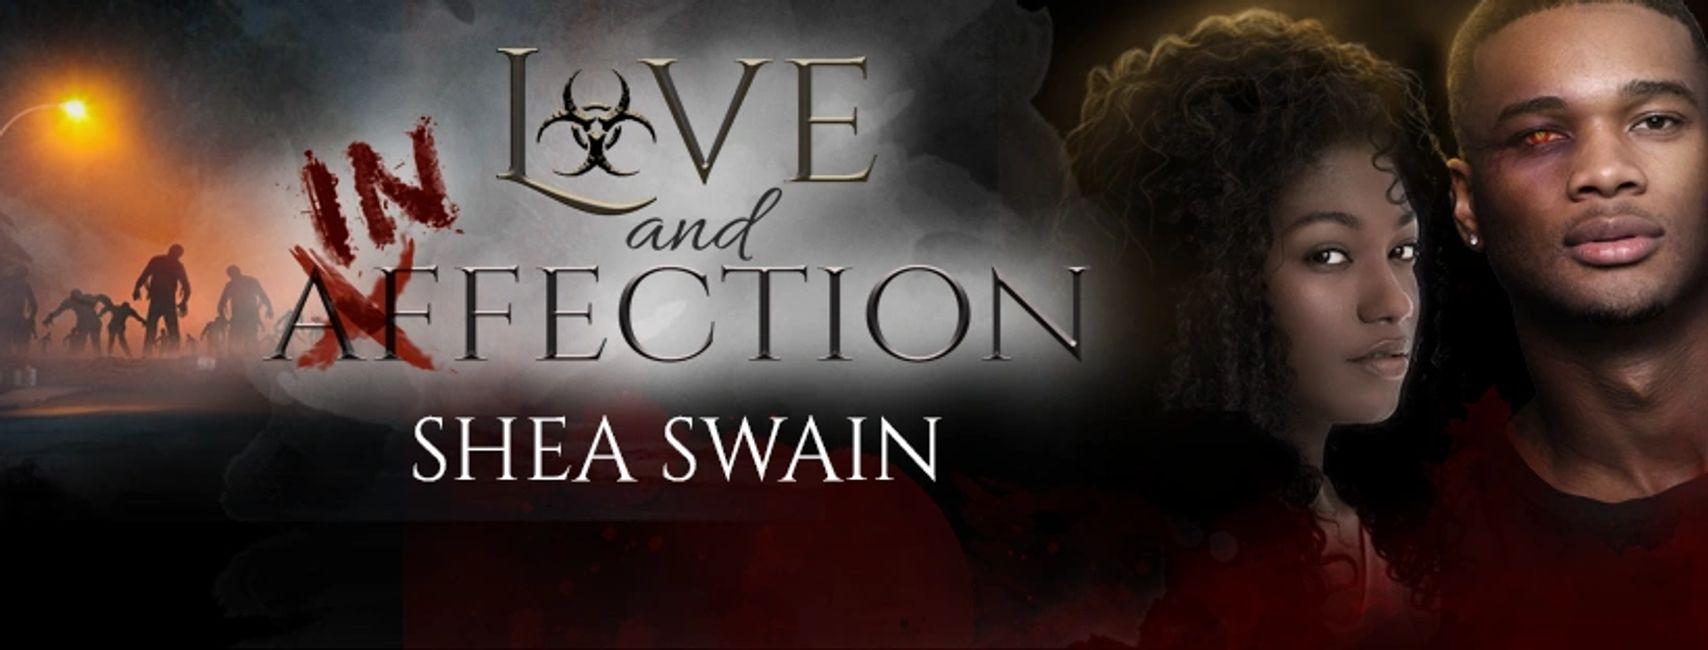 Love and Infection, a para-sci zombie-like romance by Shea Swain